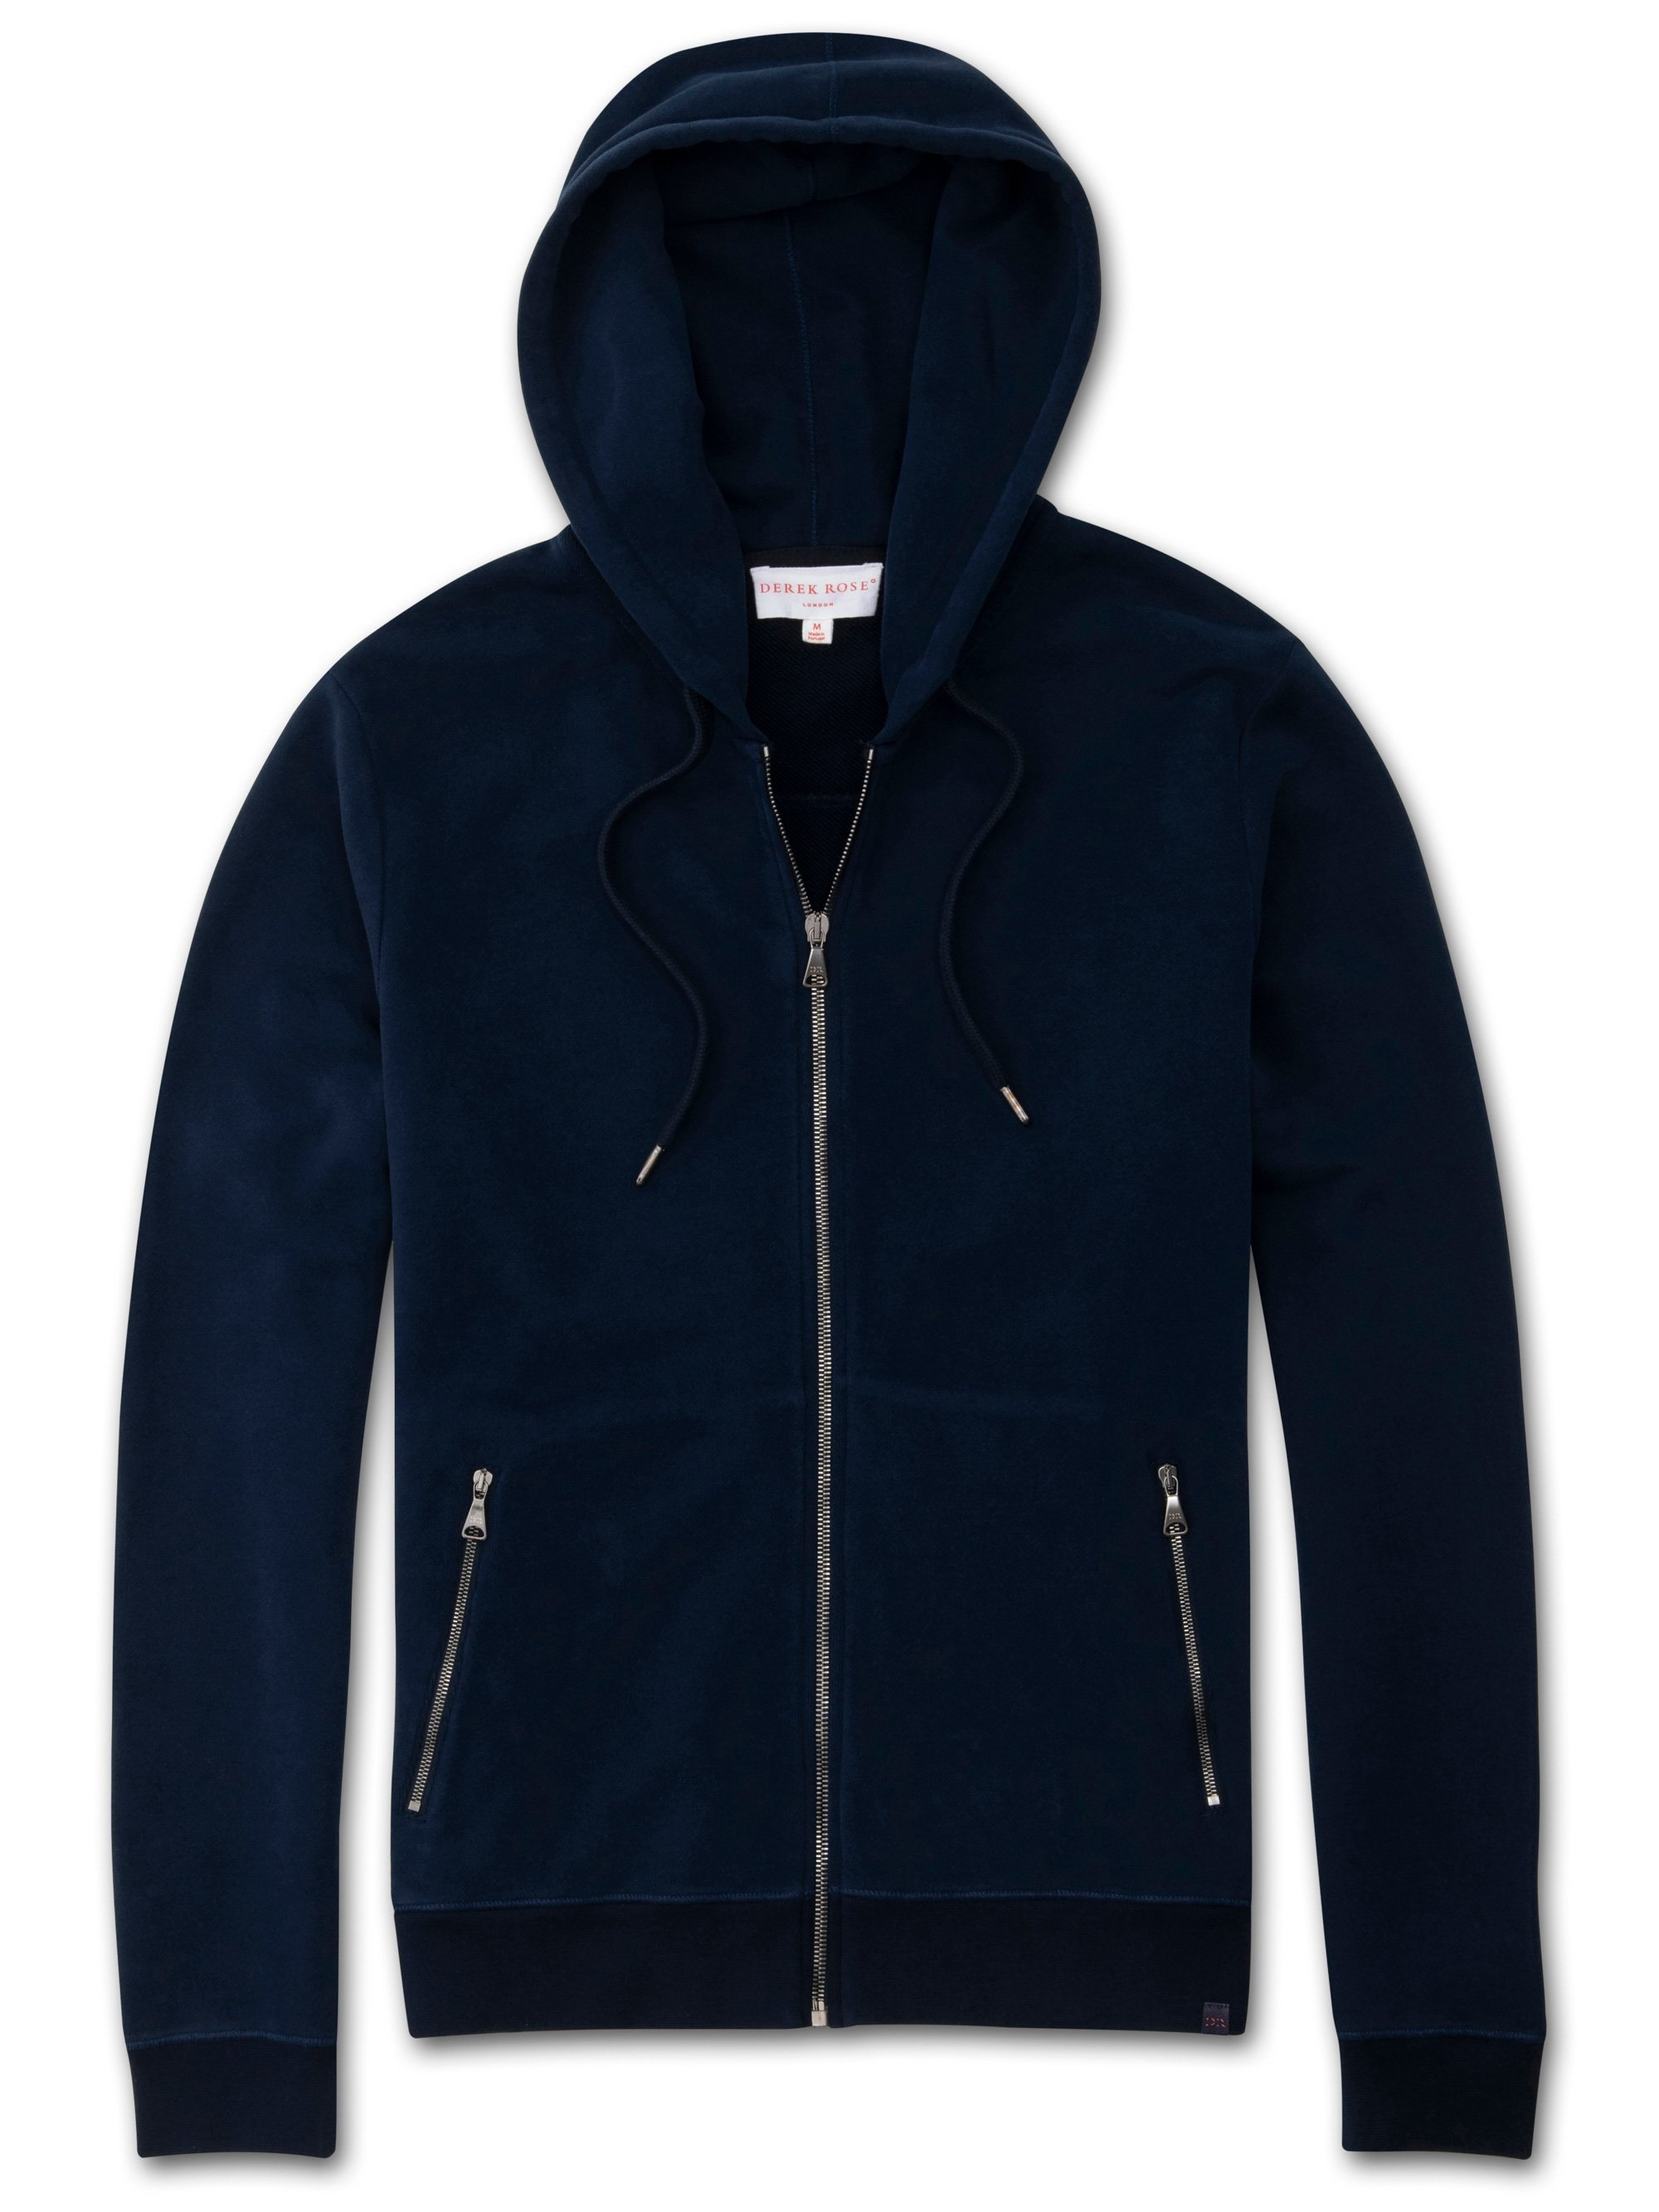 Men's Hoodie Devon 2 Loopback Cotton Navy